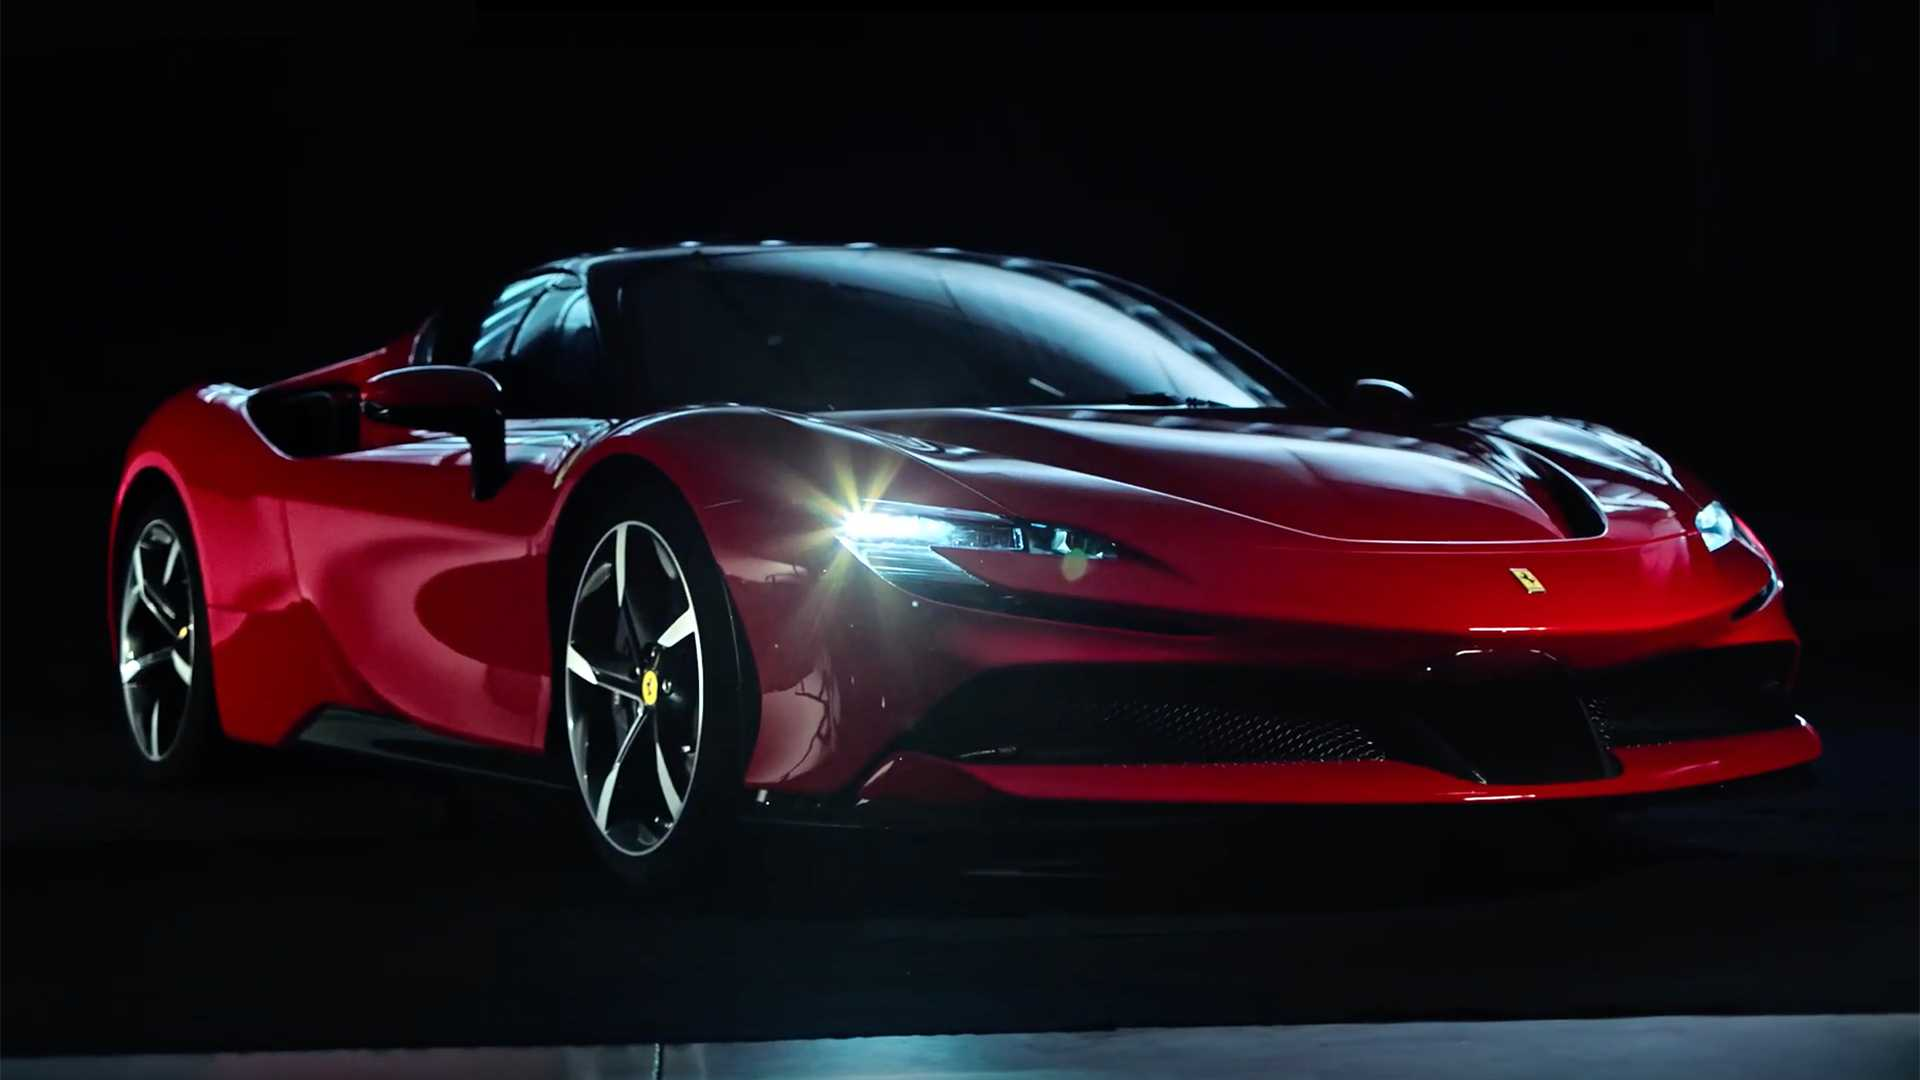 Ferrari Sf90 Stradale Powertrain Detailed In Official Video